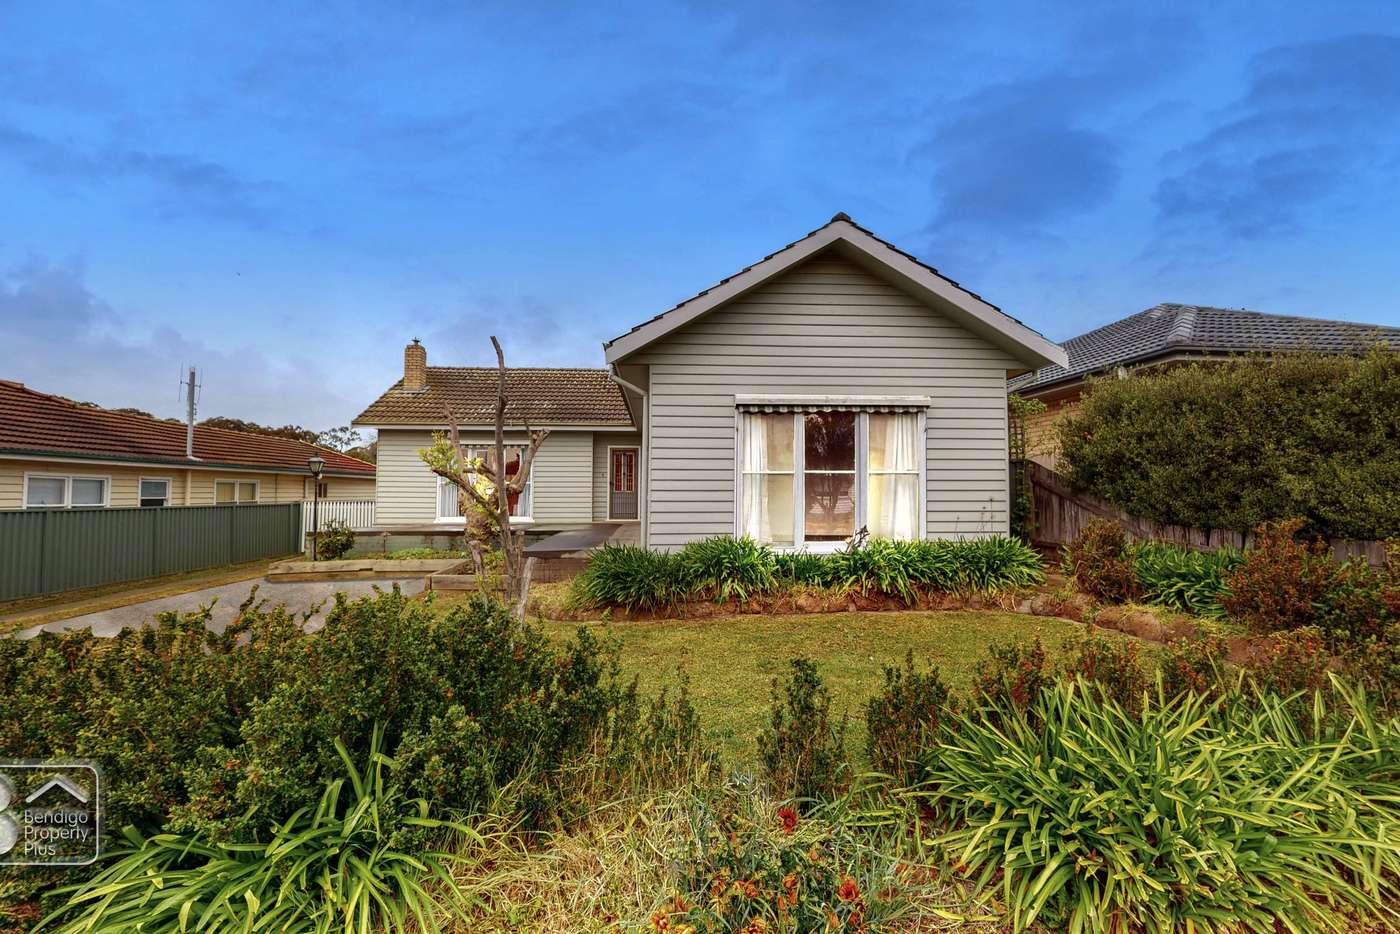 Main view of Homely house listing, 34 Clarence Avenue, Kennington VIC 3550